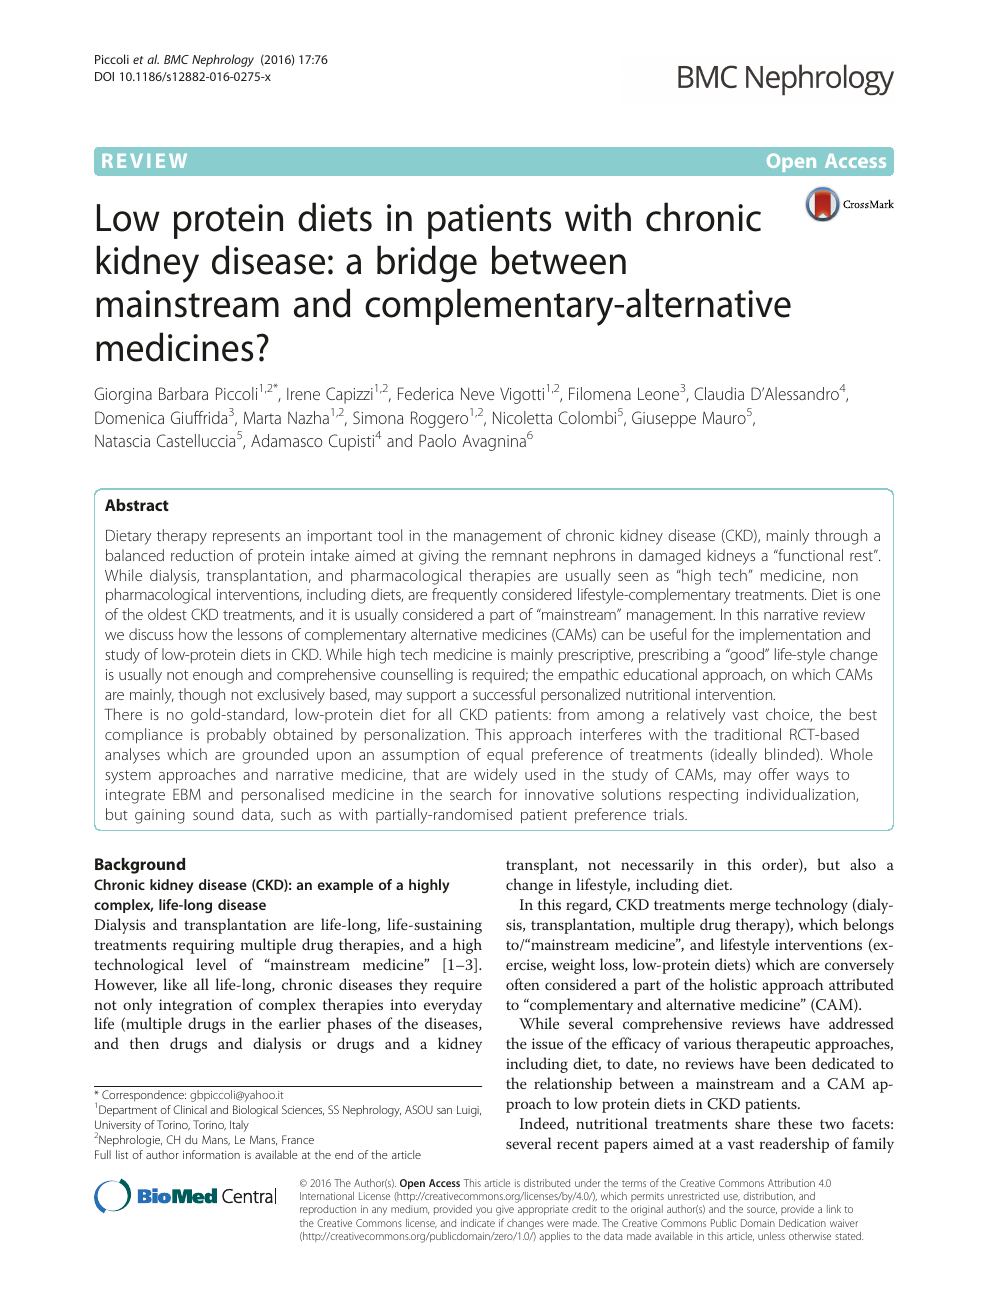 Low Protein Diets In Patients With Chronic Kidney Disease A Bridge Between Mainstream And Complementary Alternative Medicines Topic Of Research Paper In Health Sciences Download Scholarly Article Pdf And Read For Free